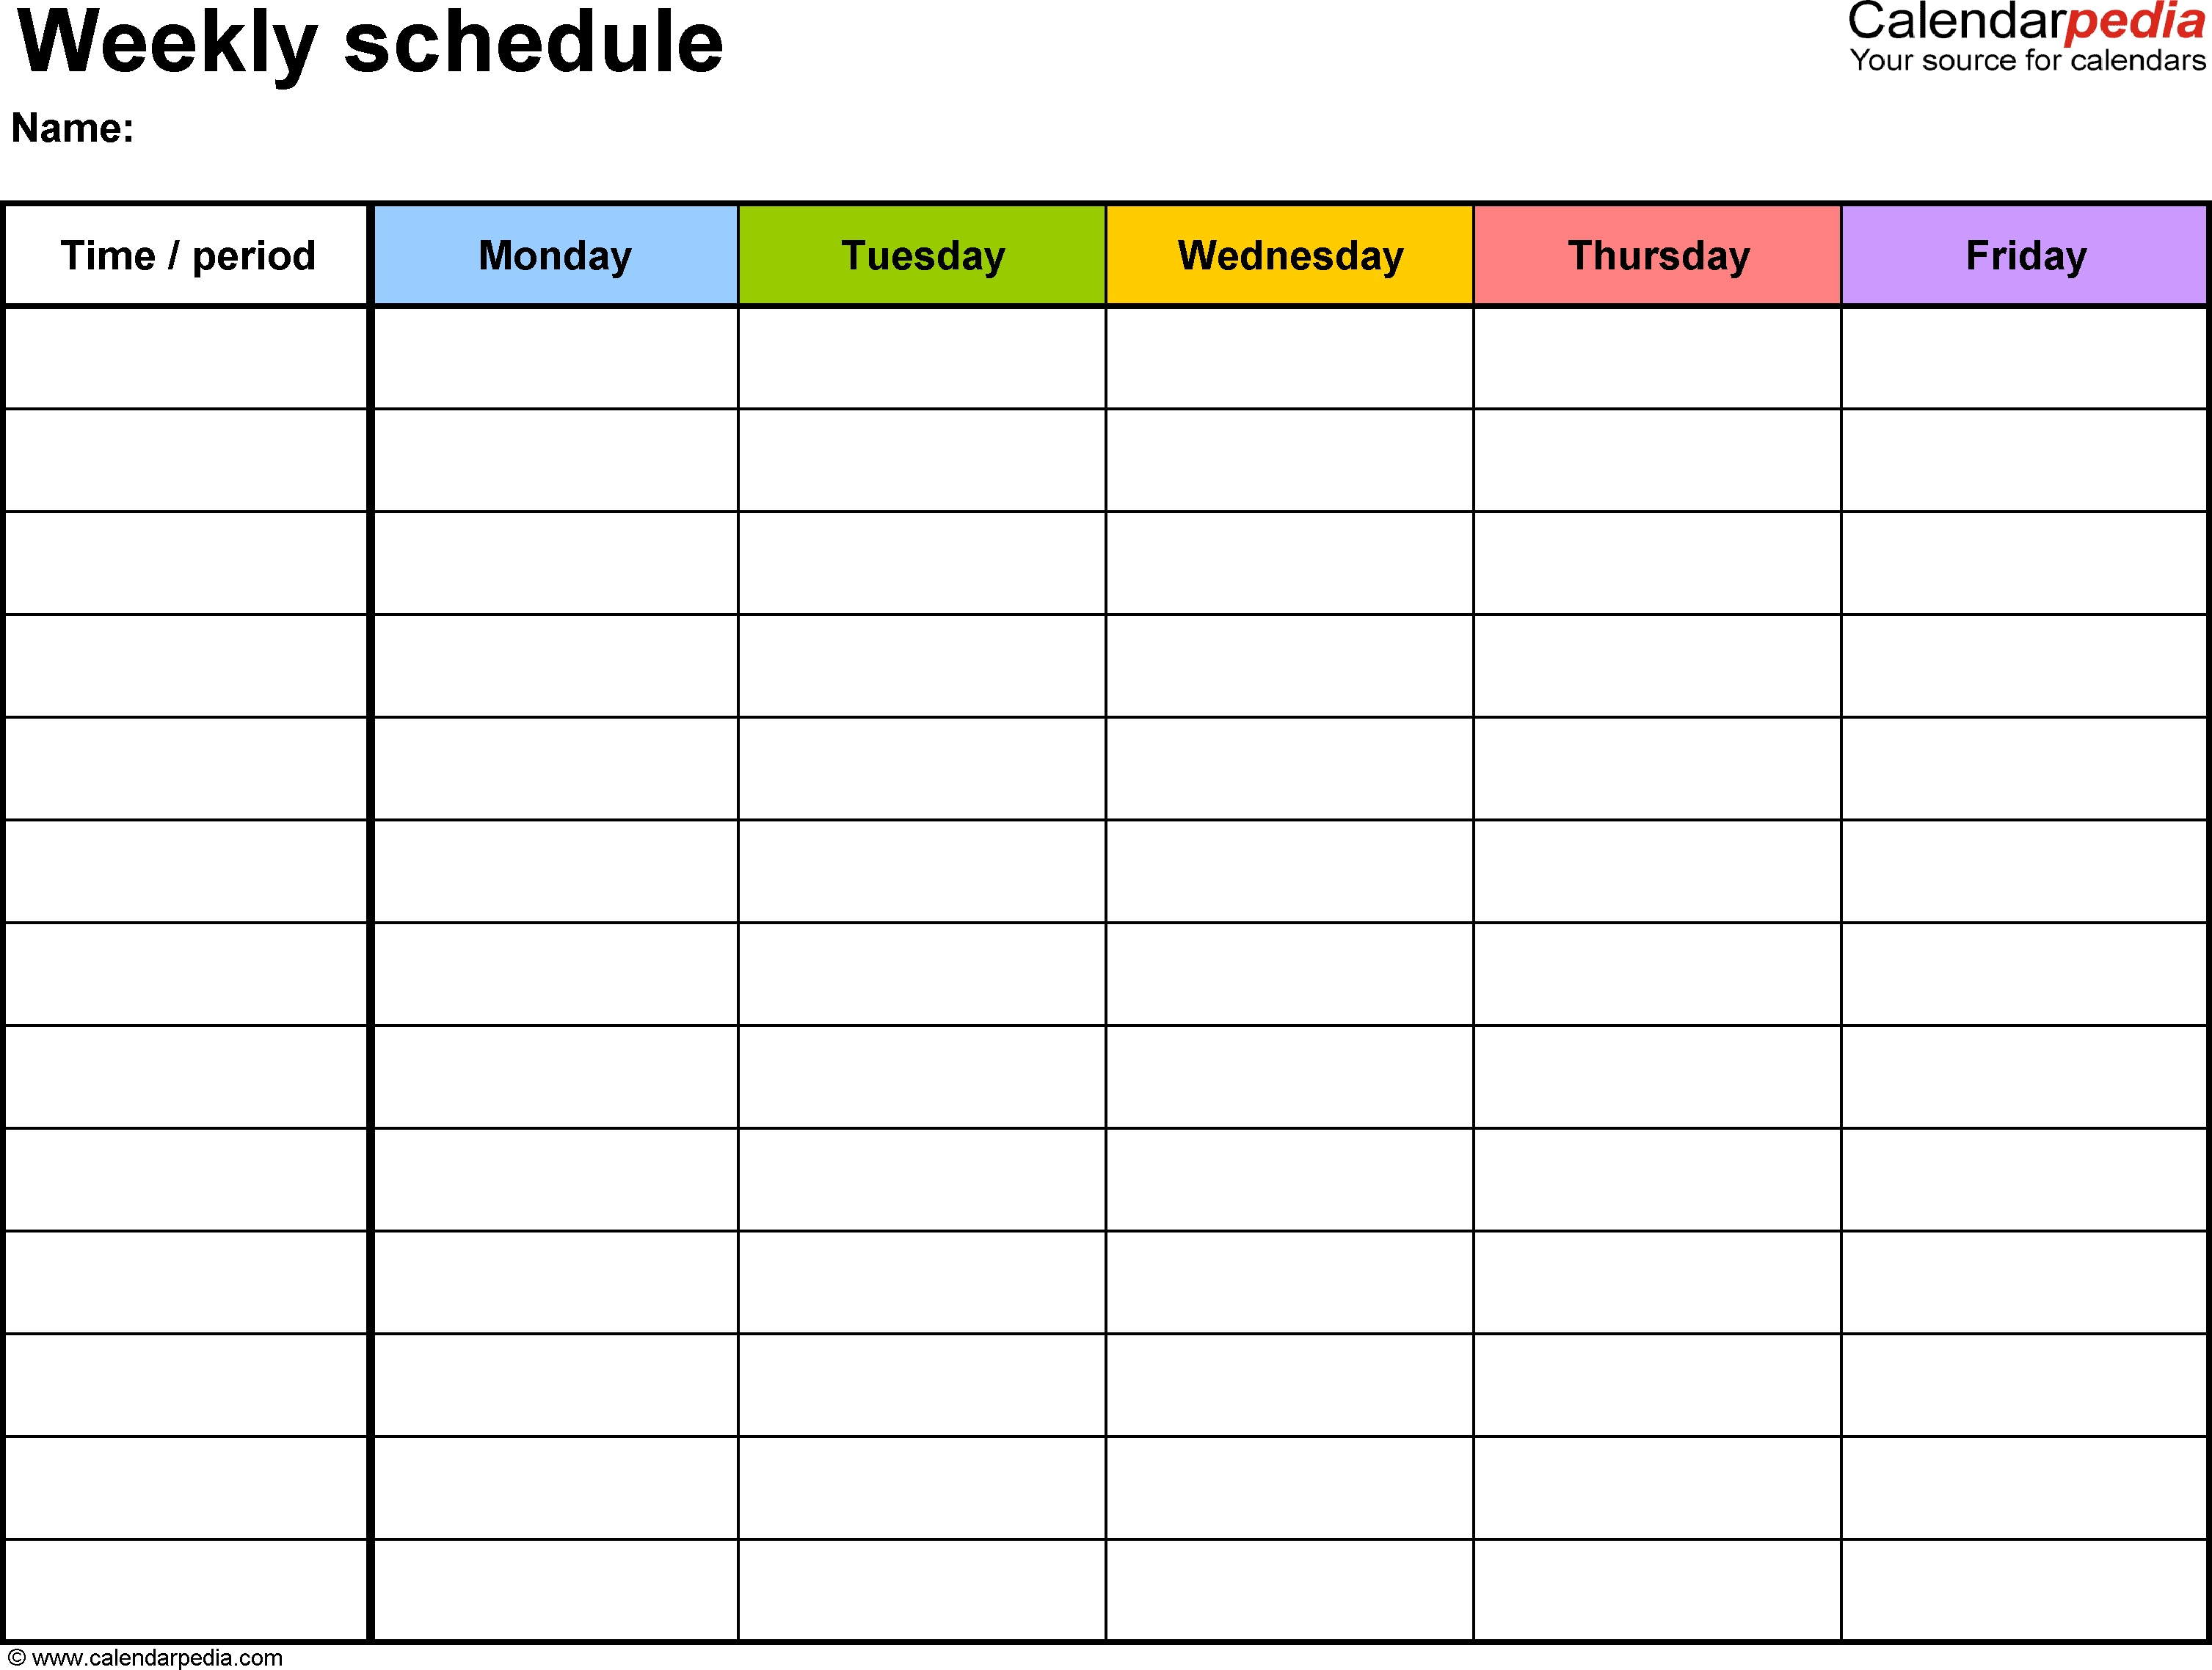 Free Weekly Schedule Templates For Word - 18 Templates in Free Weekly Calendar Templates Printable